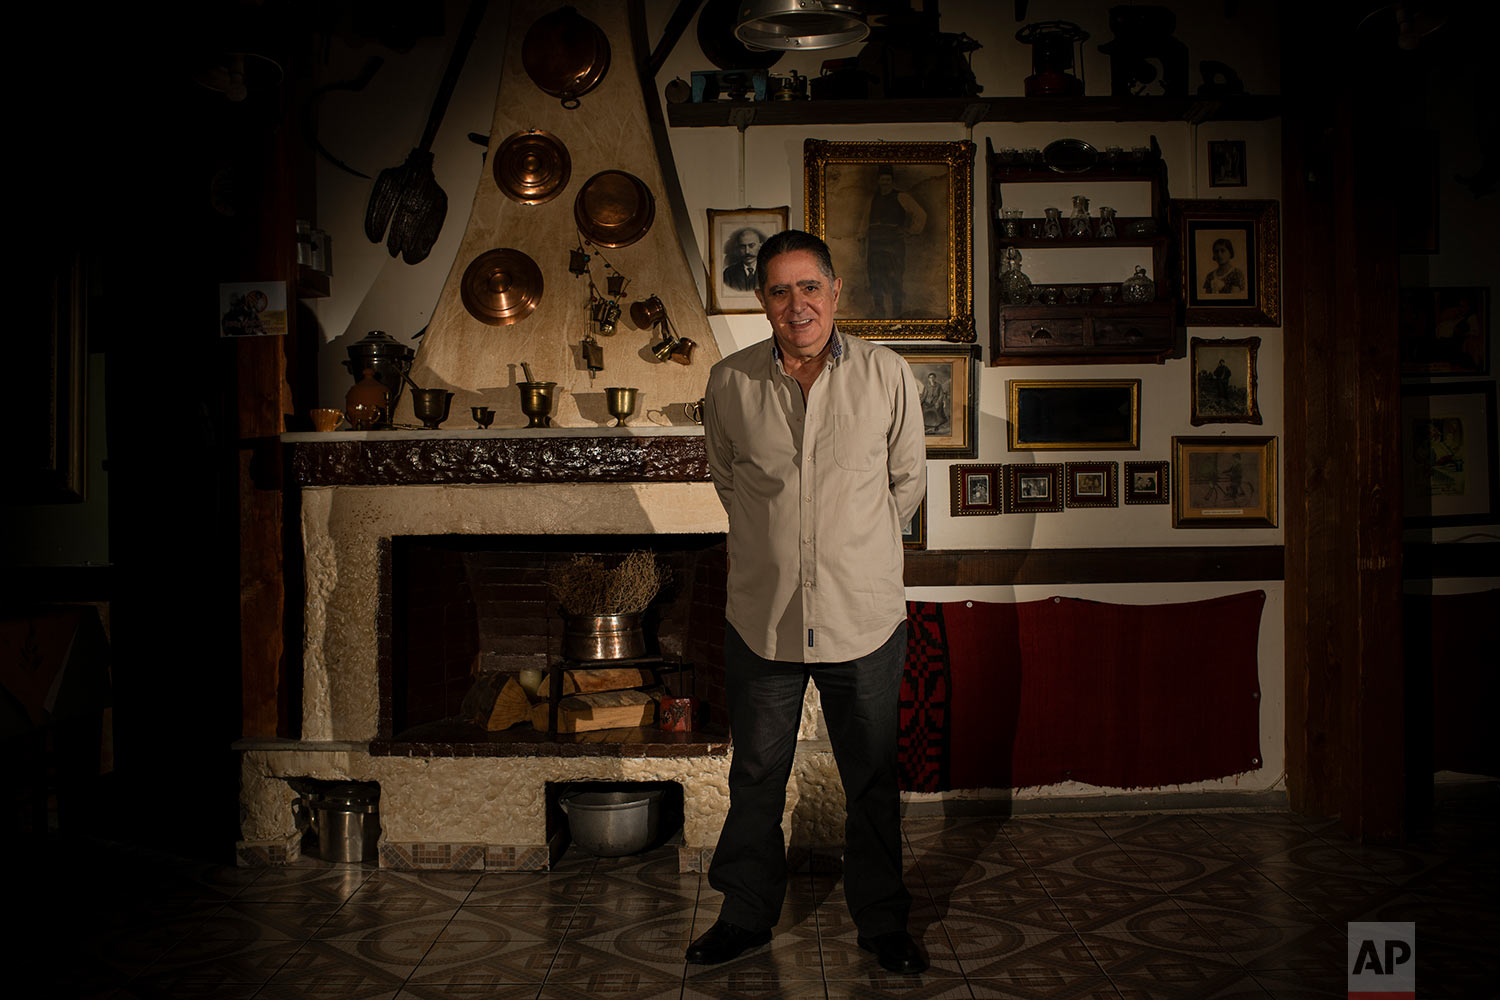 Giannis Grillis, a 67-year-old pensioner, poses for a photo in Athens inside his traditional tavern, which is now run by his children. (AP Photo/Petros Giannakouris)